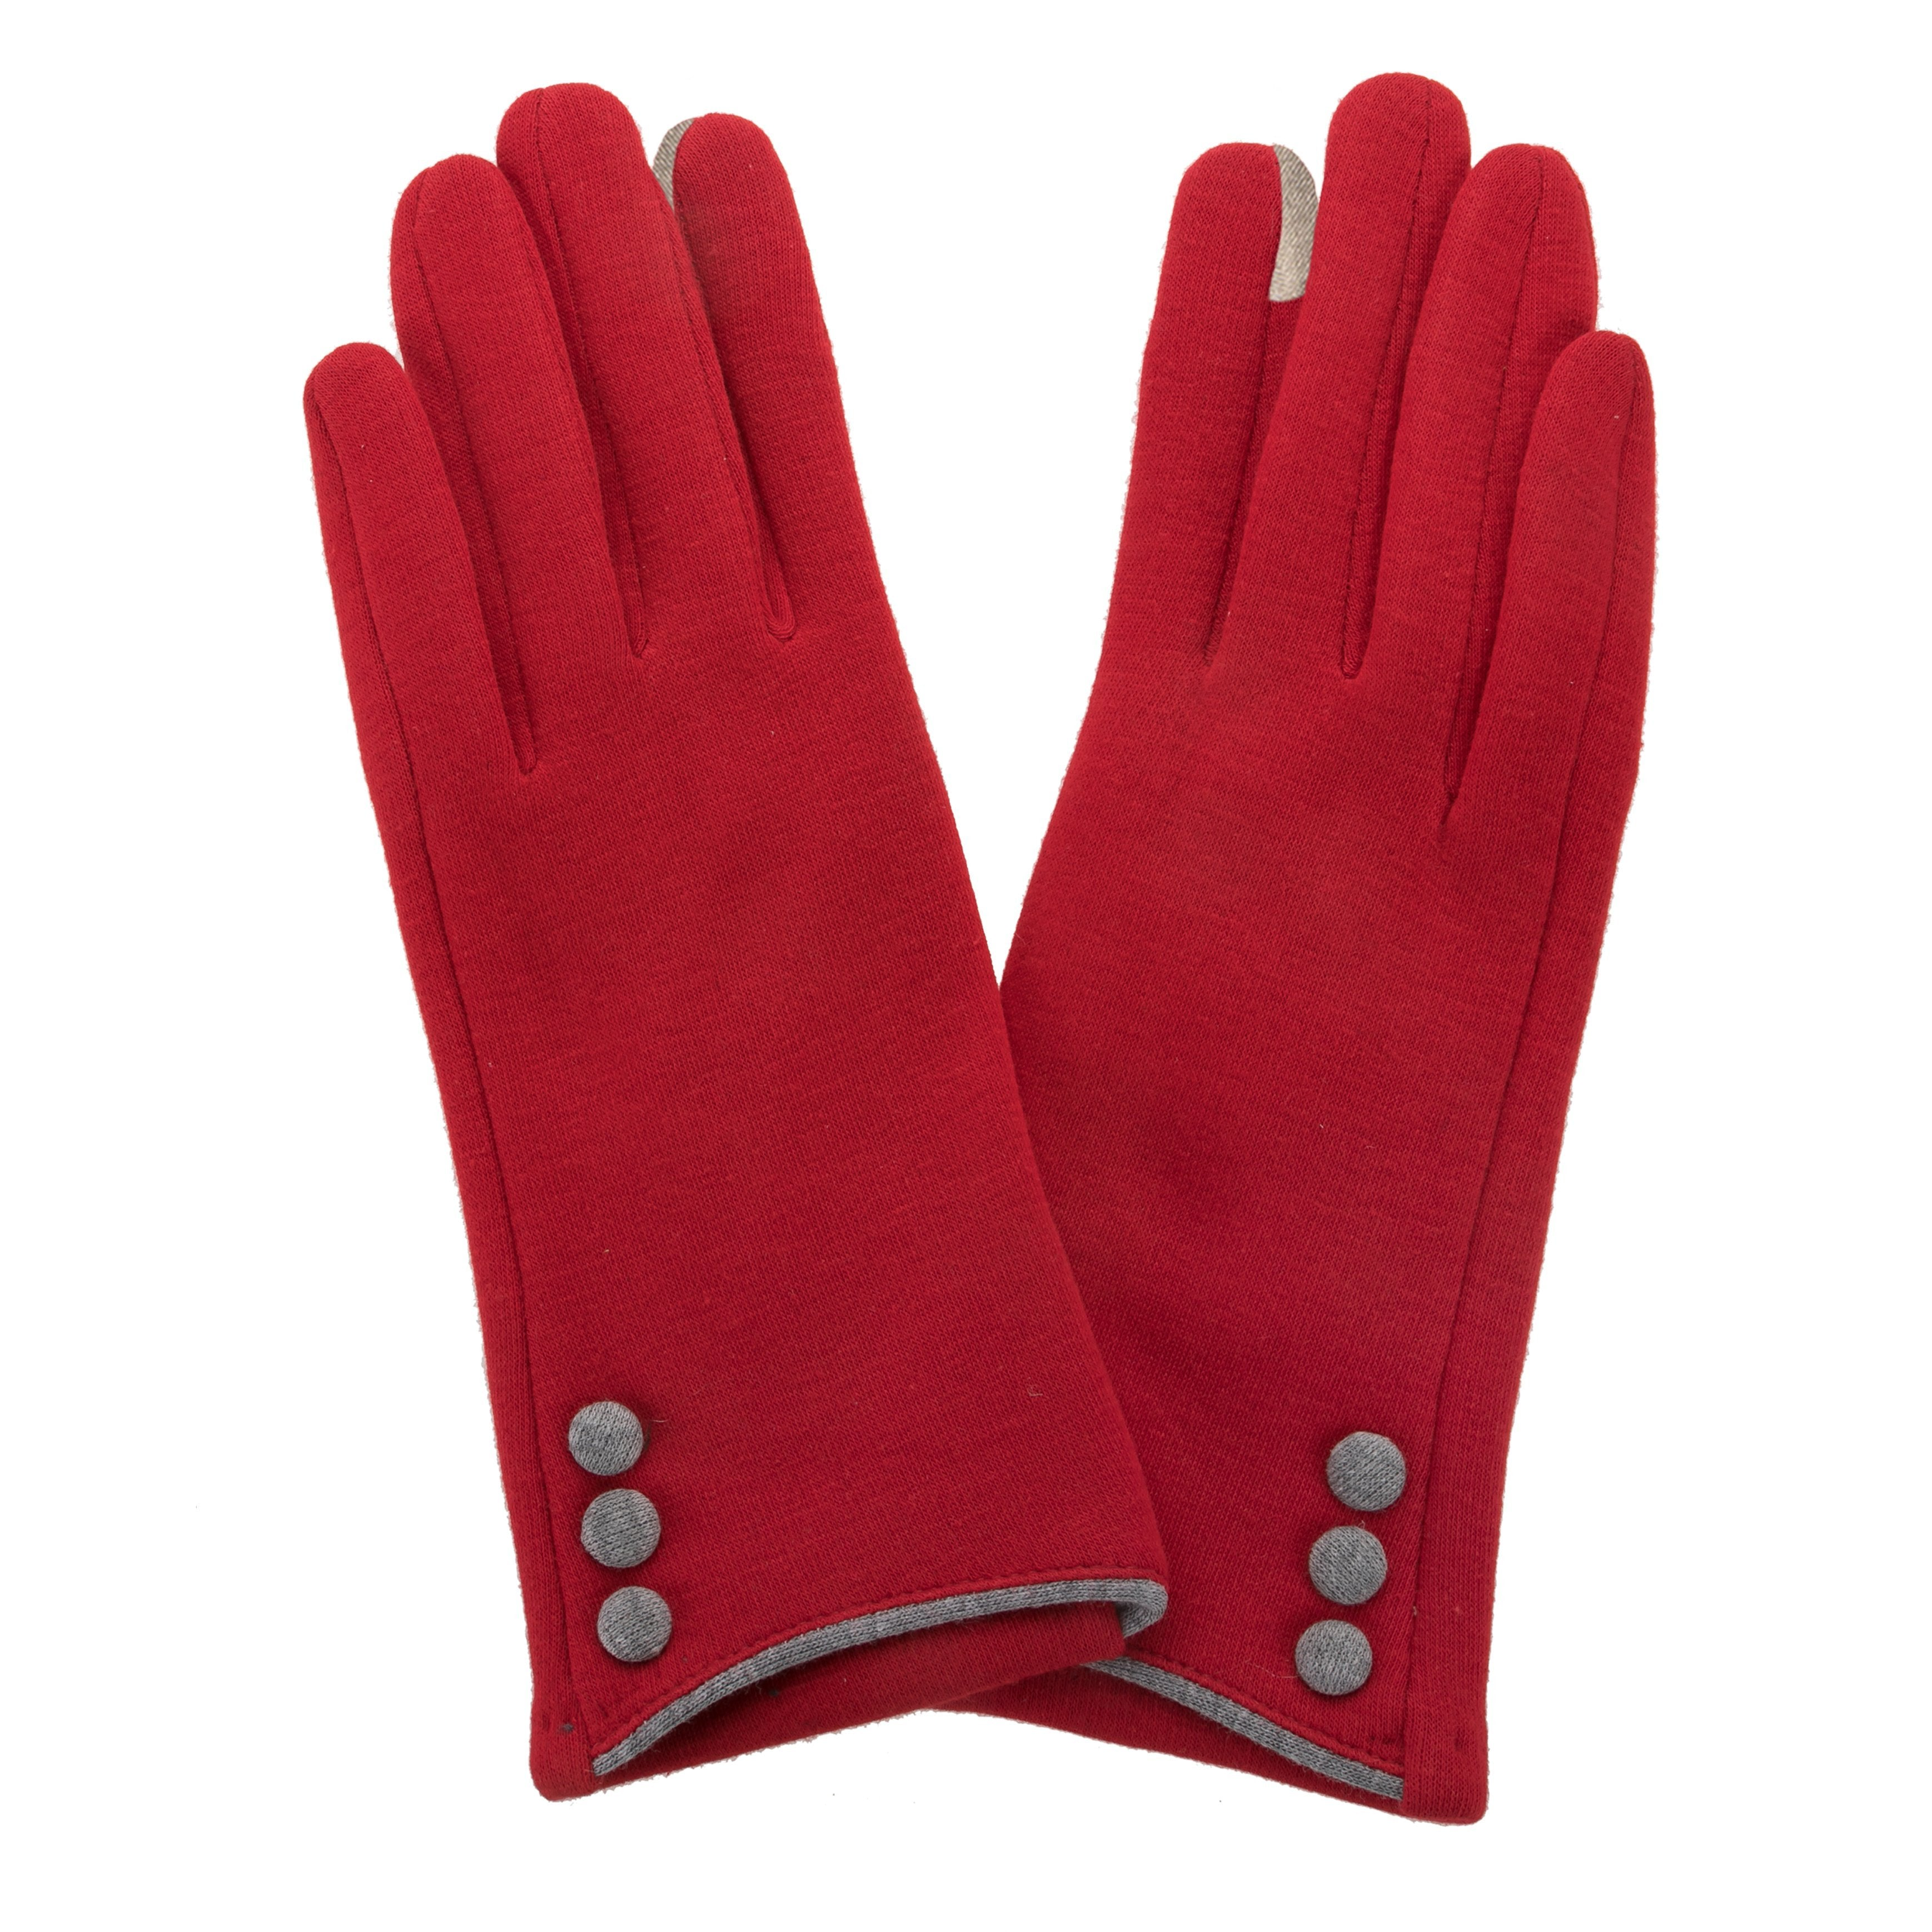 Crimson, smart screen fingertip gloves with grey buttons and trim.